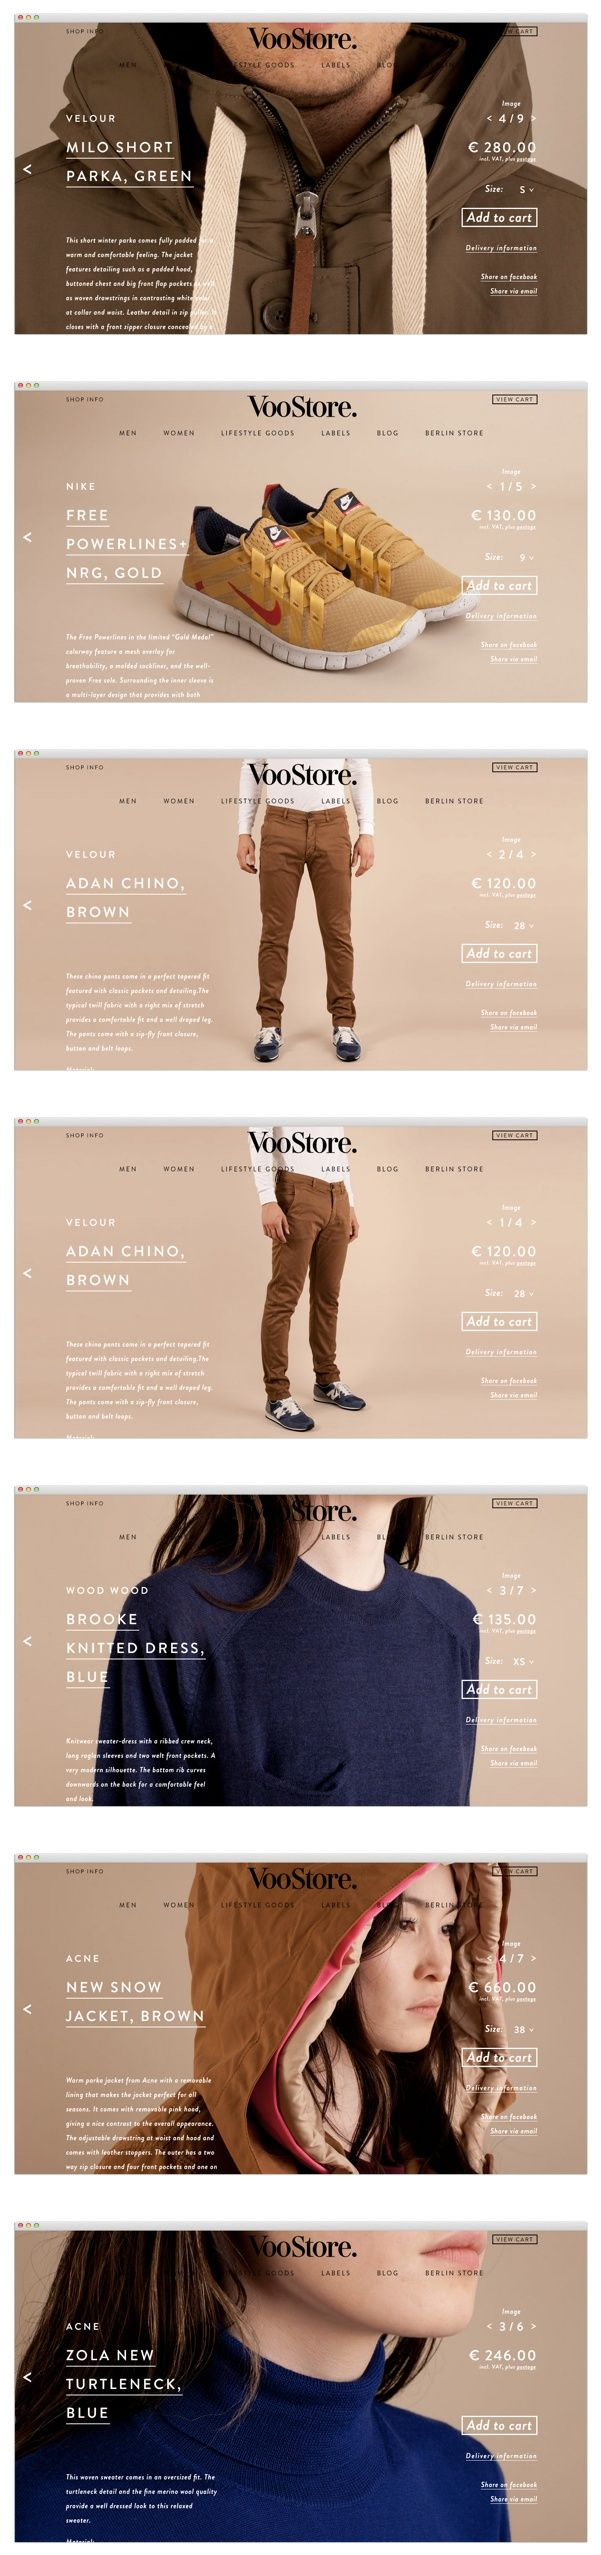 VooStore. | #webdesign #it #web #design #animation #layout #userinterface #website #webdesign found on fromupnorth.com pinned by www.BlickeDeeler.de | Visit our website www.blickedeeler.de/leistungen/webdesign